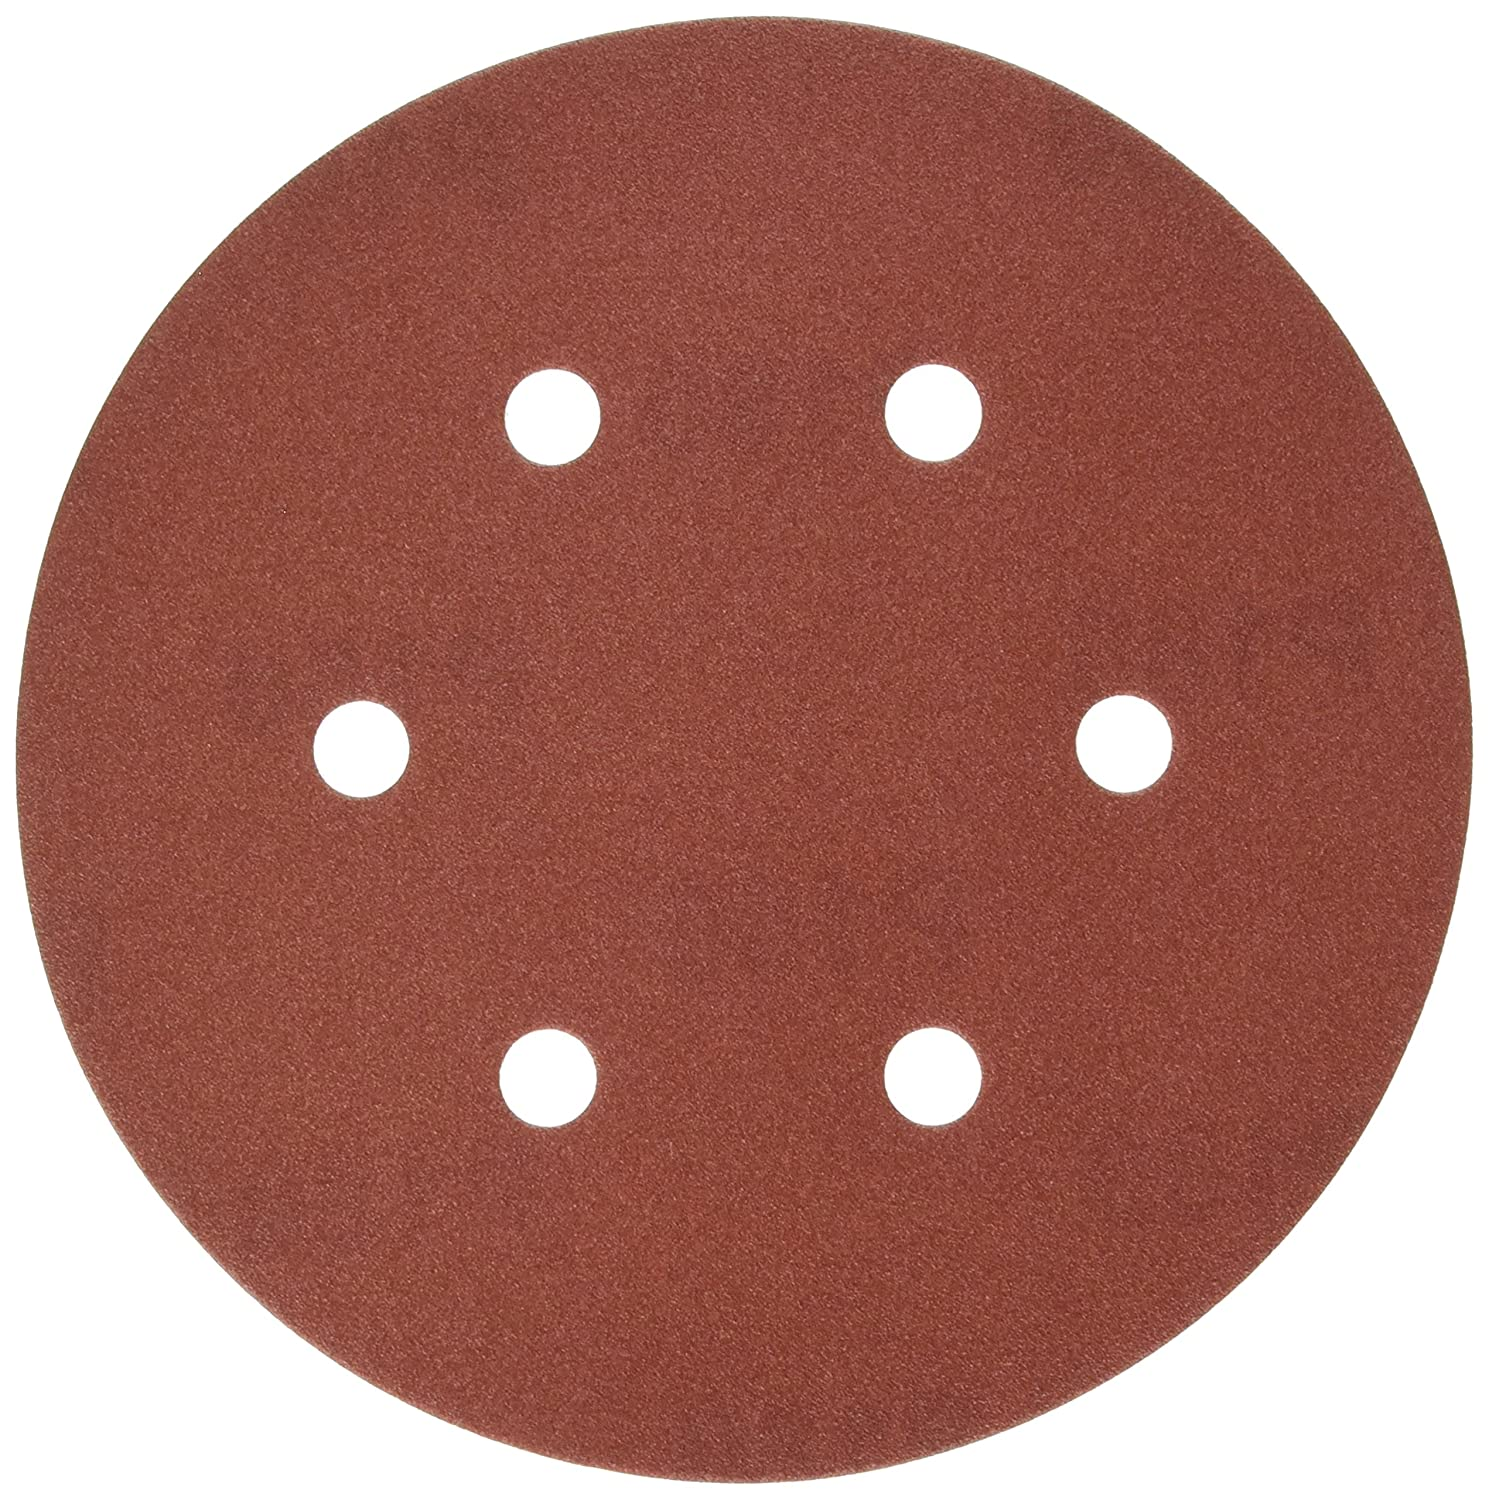 PORTER CABLE 736601825 6' Hook and Loop Aluminum Oxide 6 Hole 180G Disc, 25 Pack